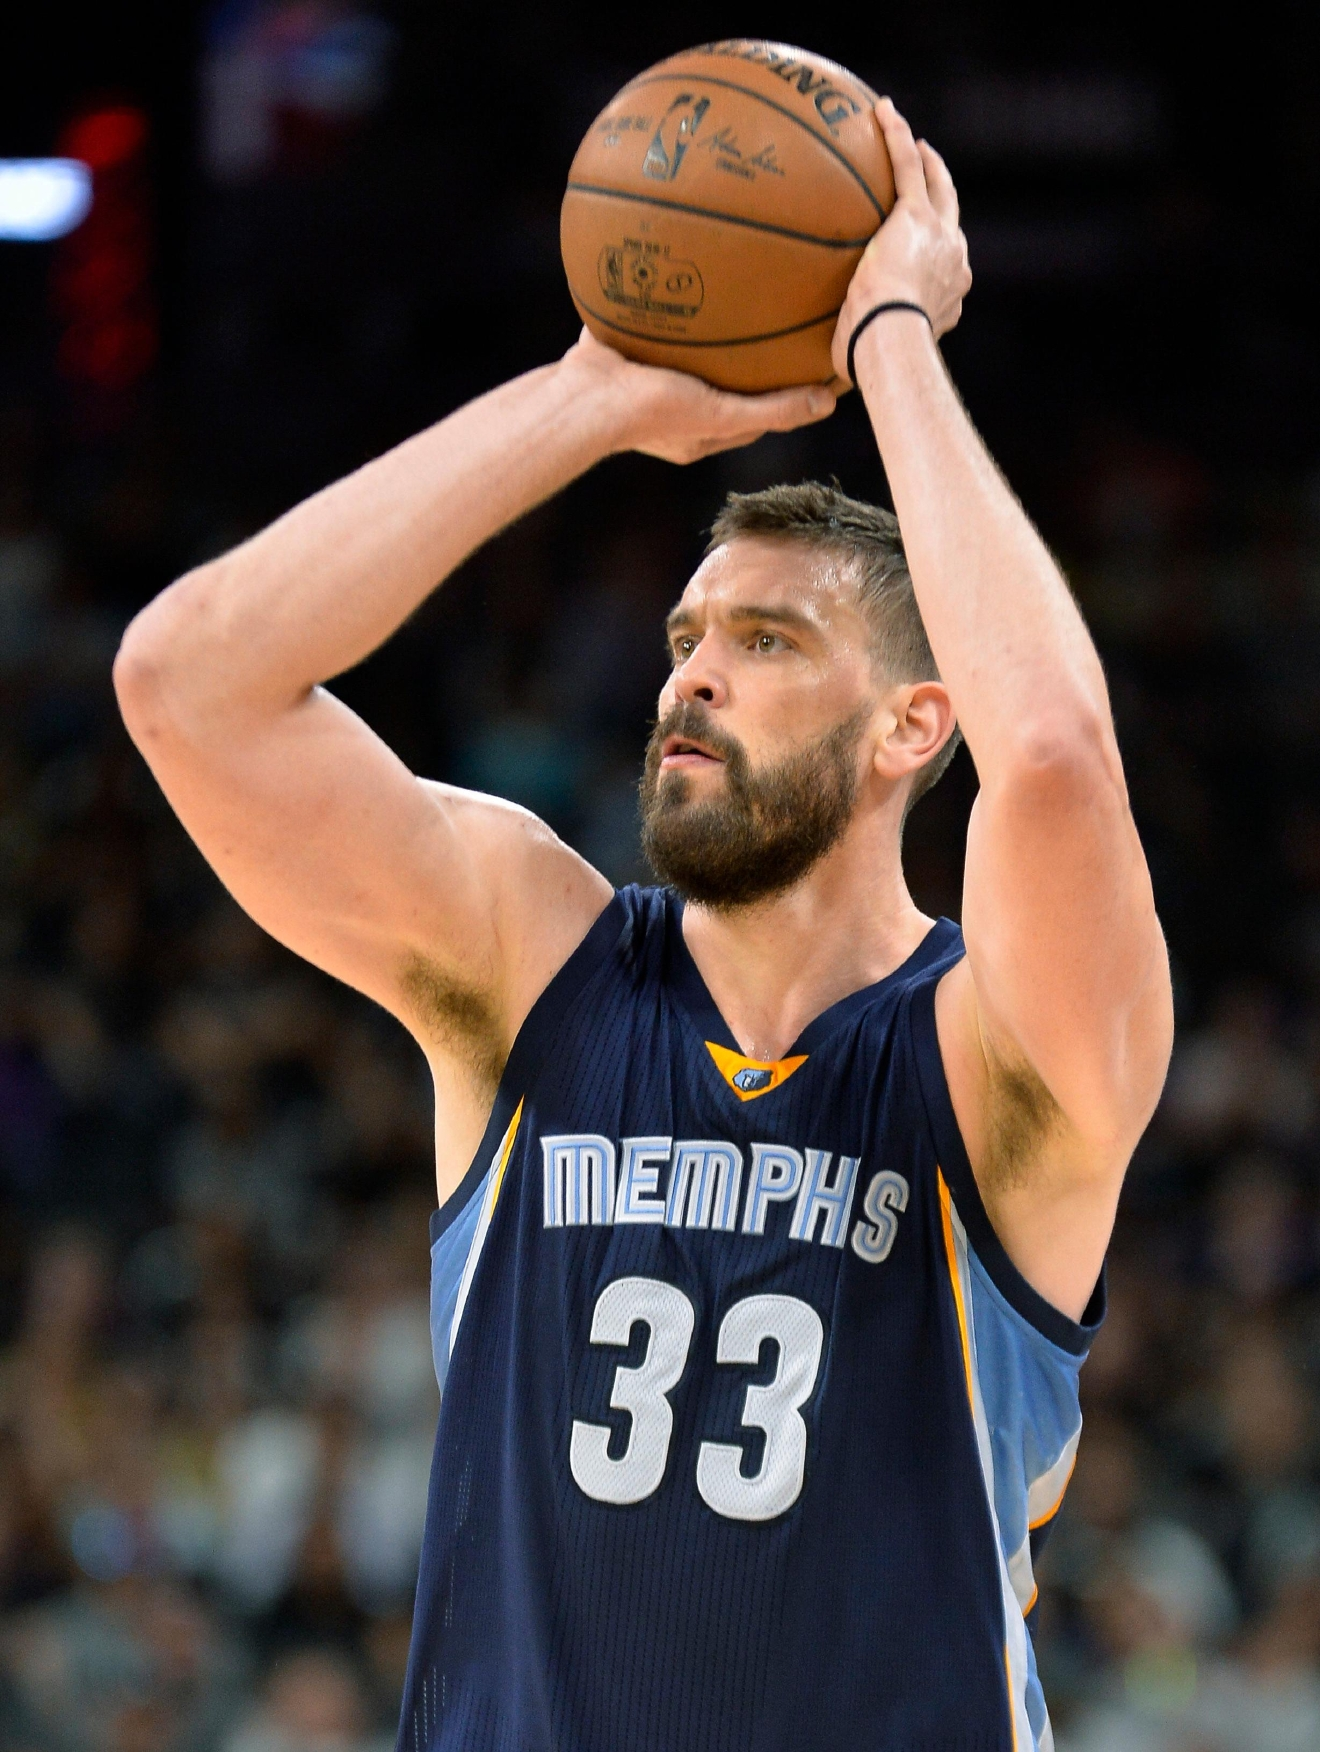 Memphis Grizzlies center Marc Gasol, of Spain, shoots during the first half of the team's NBA basketball game against the San Antonio Spurs, Thursday, March 23, 2017, in San Antonio. (AP Photo/Darren Abate)